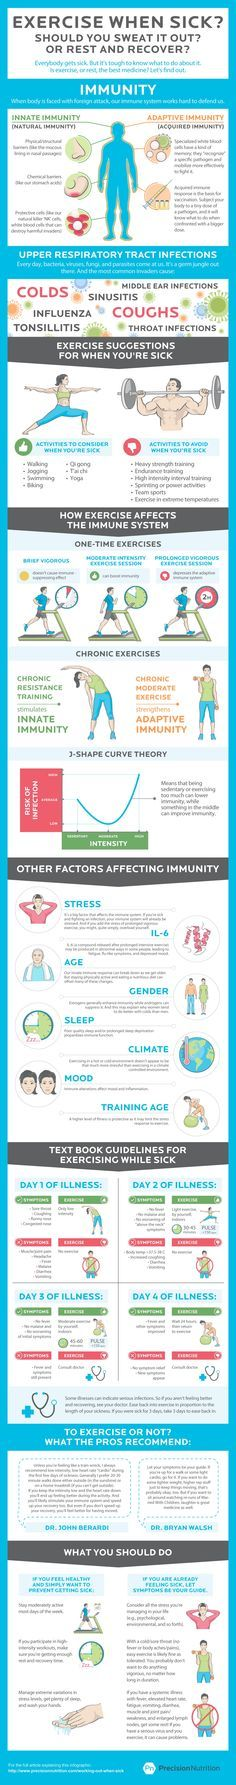 precision nutrition exercise when sick Should you exercise when sick? How to make working out work for your immunity.